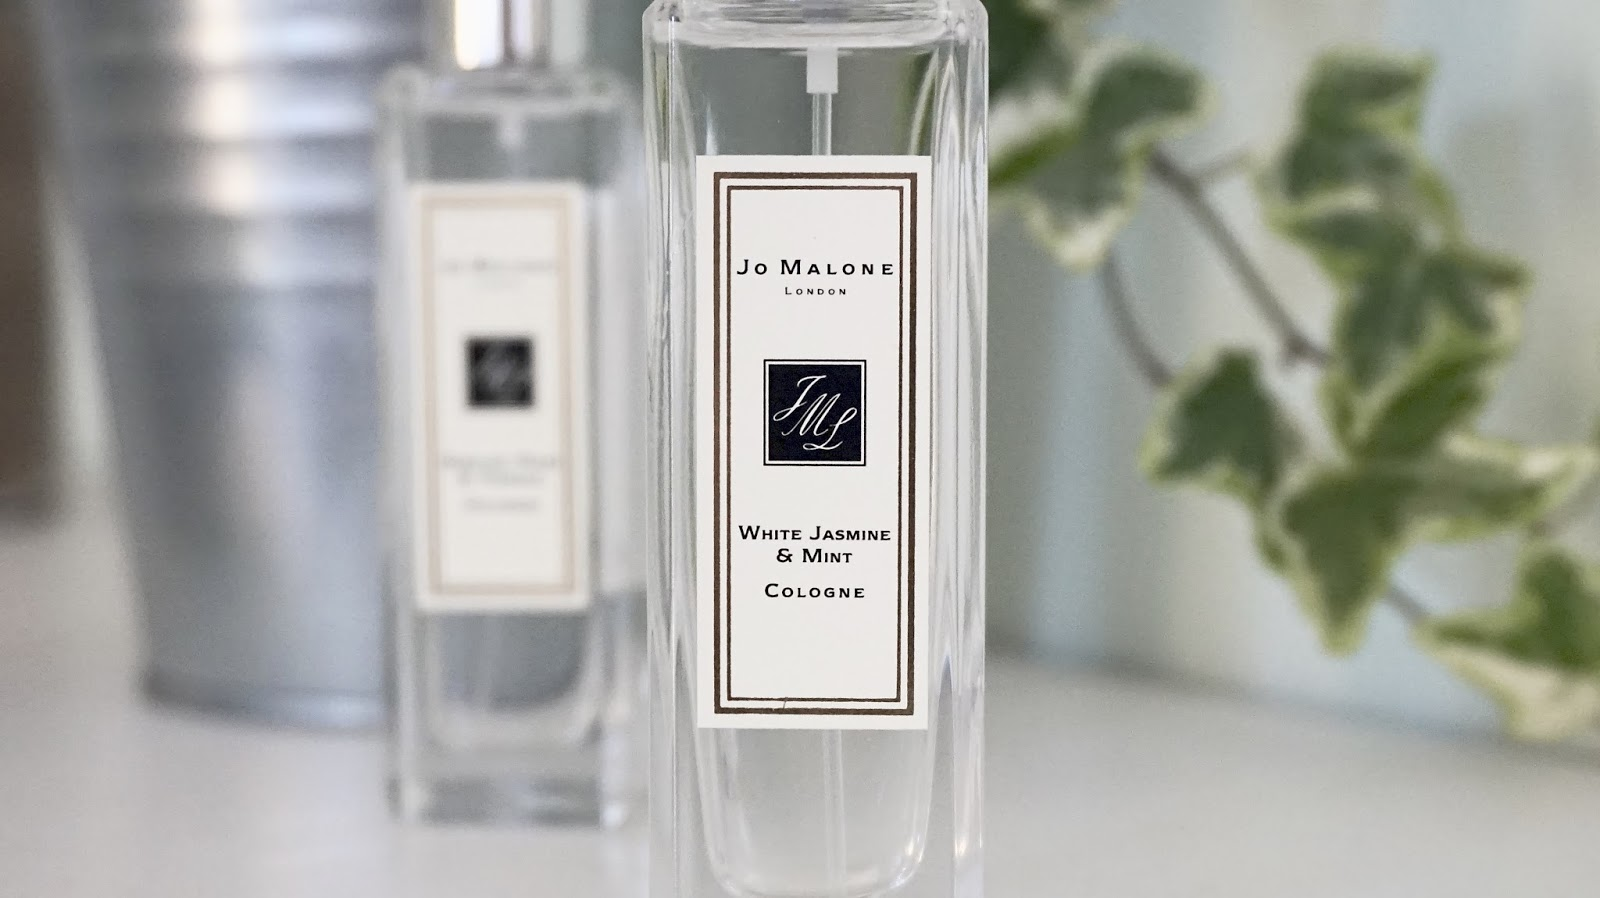 For the Love of Jo Malone